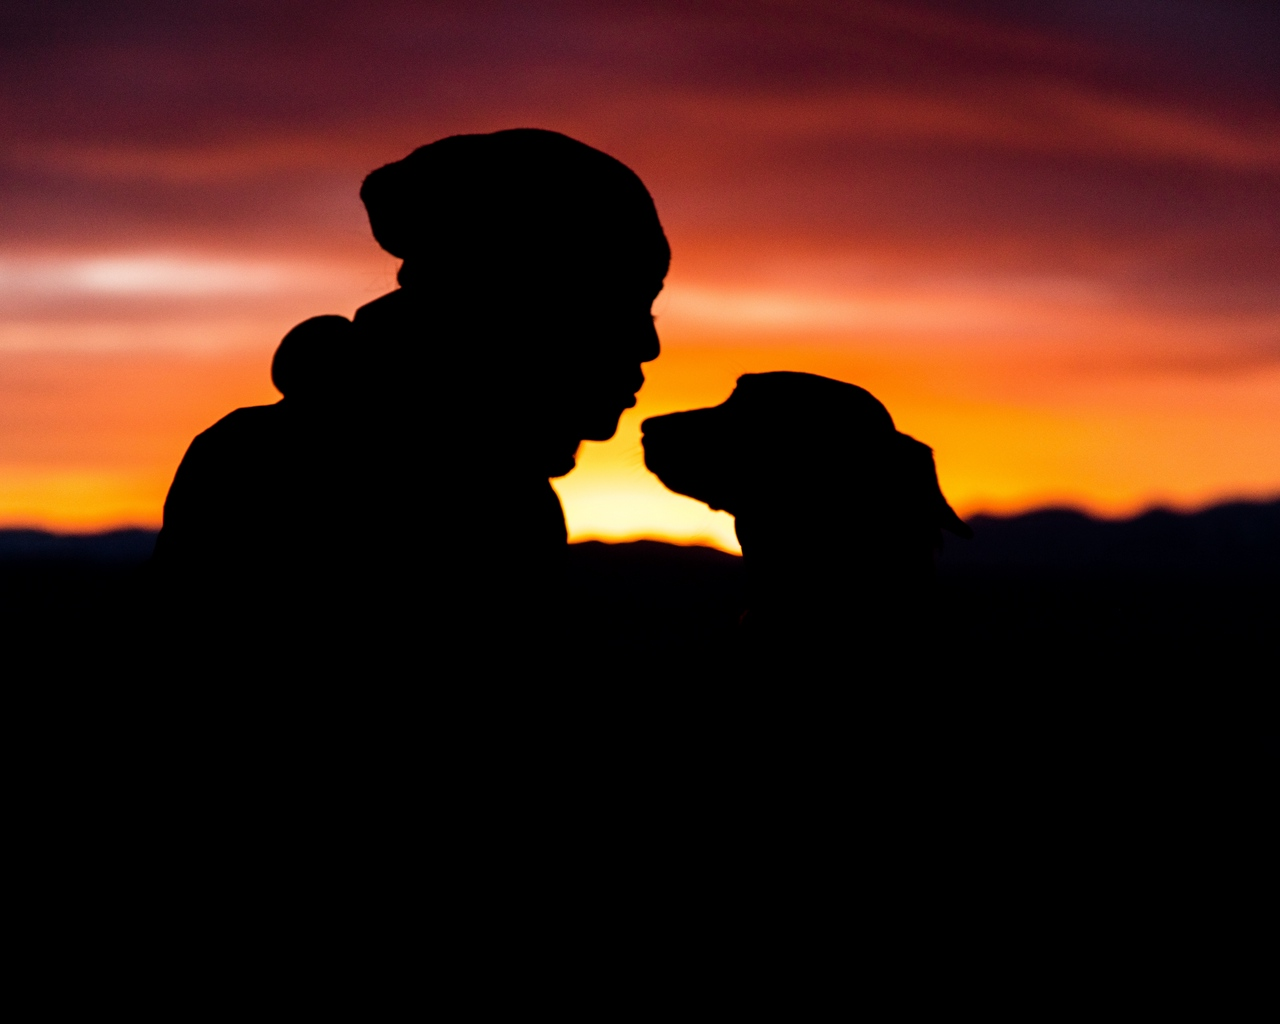 1280x1024 Download Wallpaper 1280x1024 Silhouettes, Person, Dog Standard 54